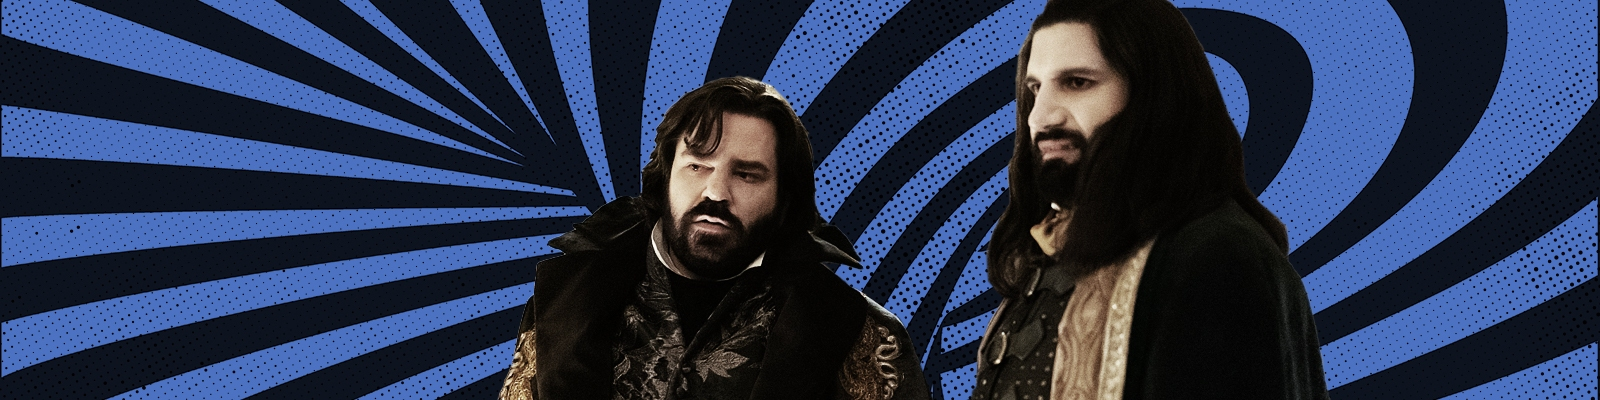 The Rundown: 'What We Do In The Shadows' Is On A Crazy Hot Streak